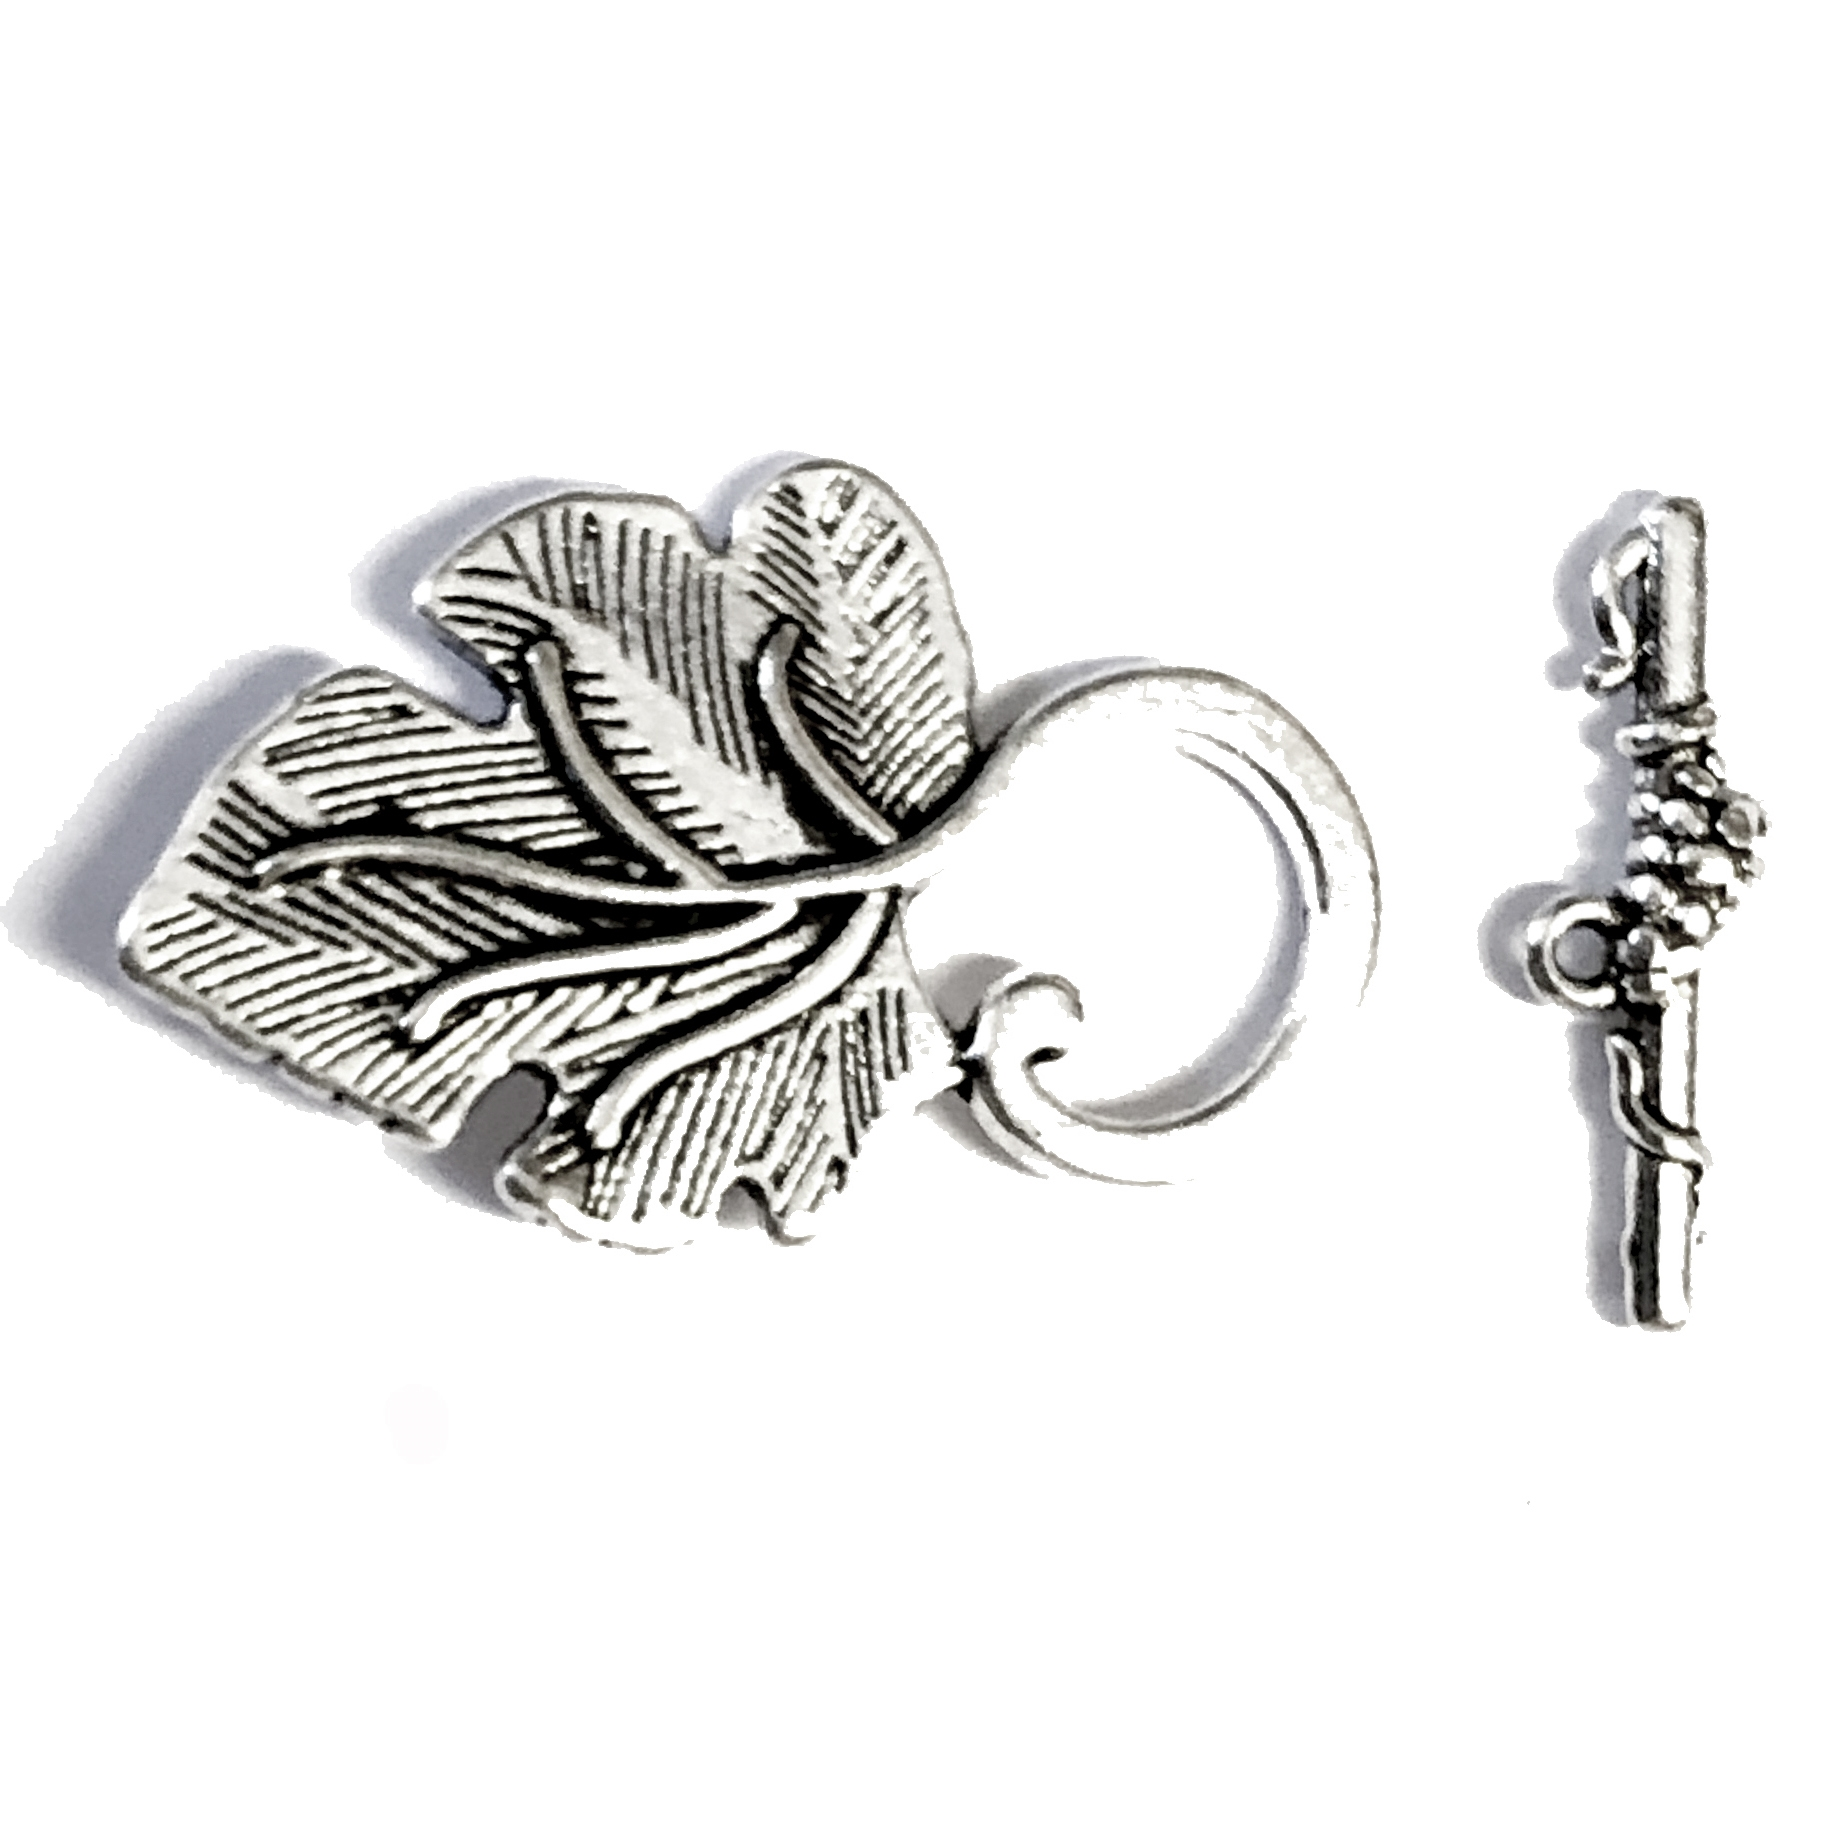 leaf toggle clasp, antique silver, toggle, clasp, jewelry clasps, silver, B'sue Boutiques, vintage supplies, jewelry making, jewelry parts, toggles, beading supplies, 09138, leaf motif, leaves